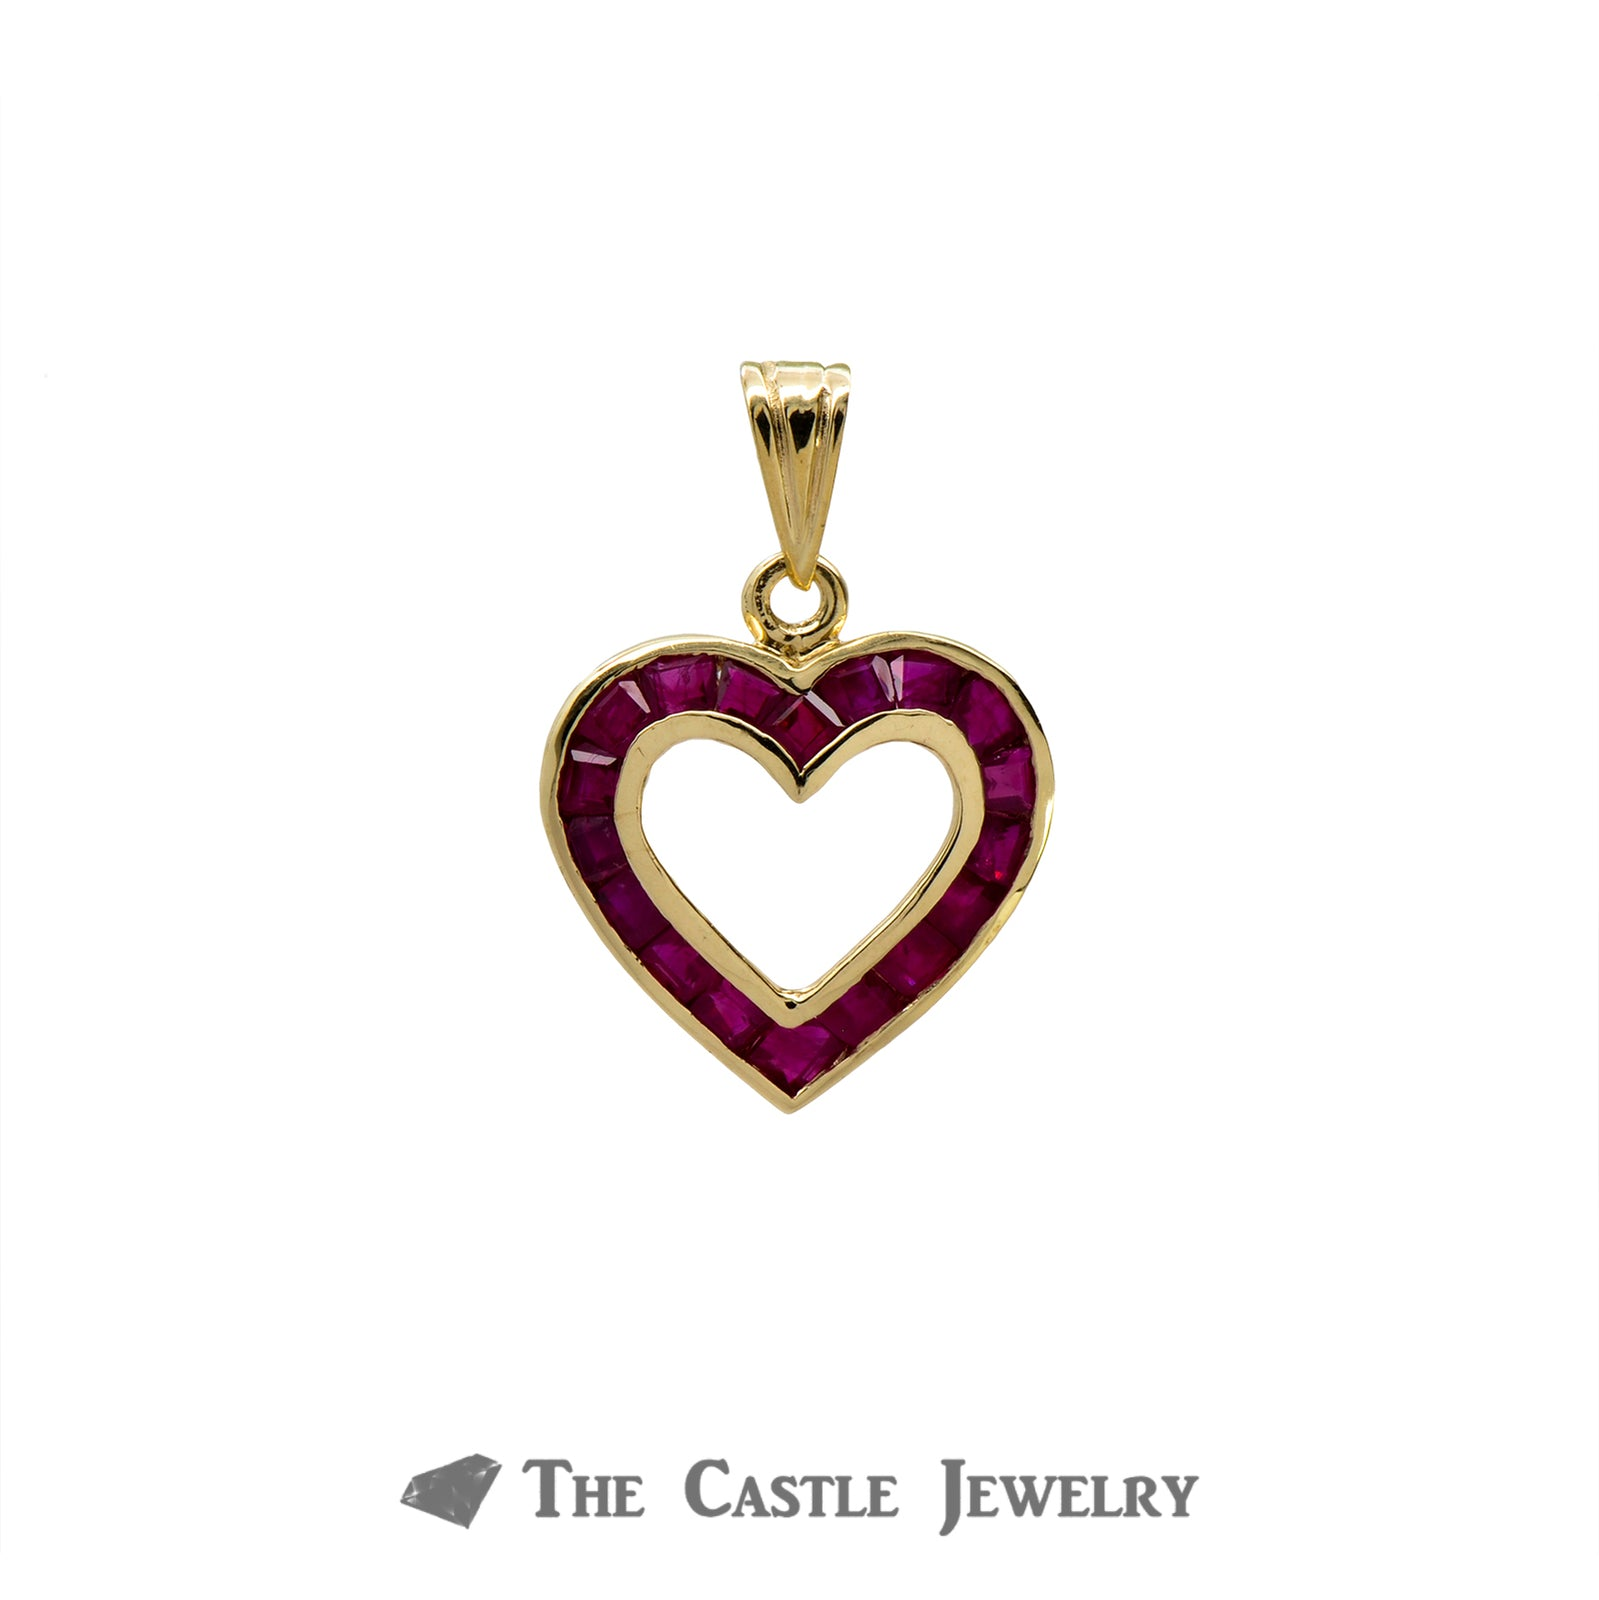 Heart Shaped Pendant with Channel Set Princess Cut Rubies in 14k Yellow Gold